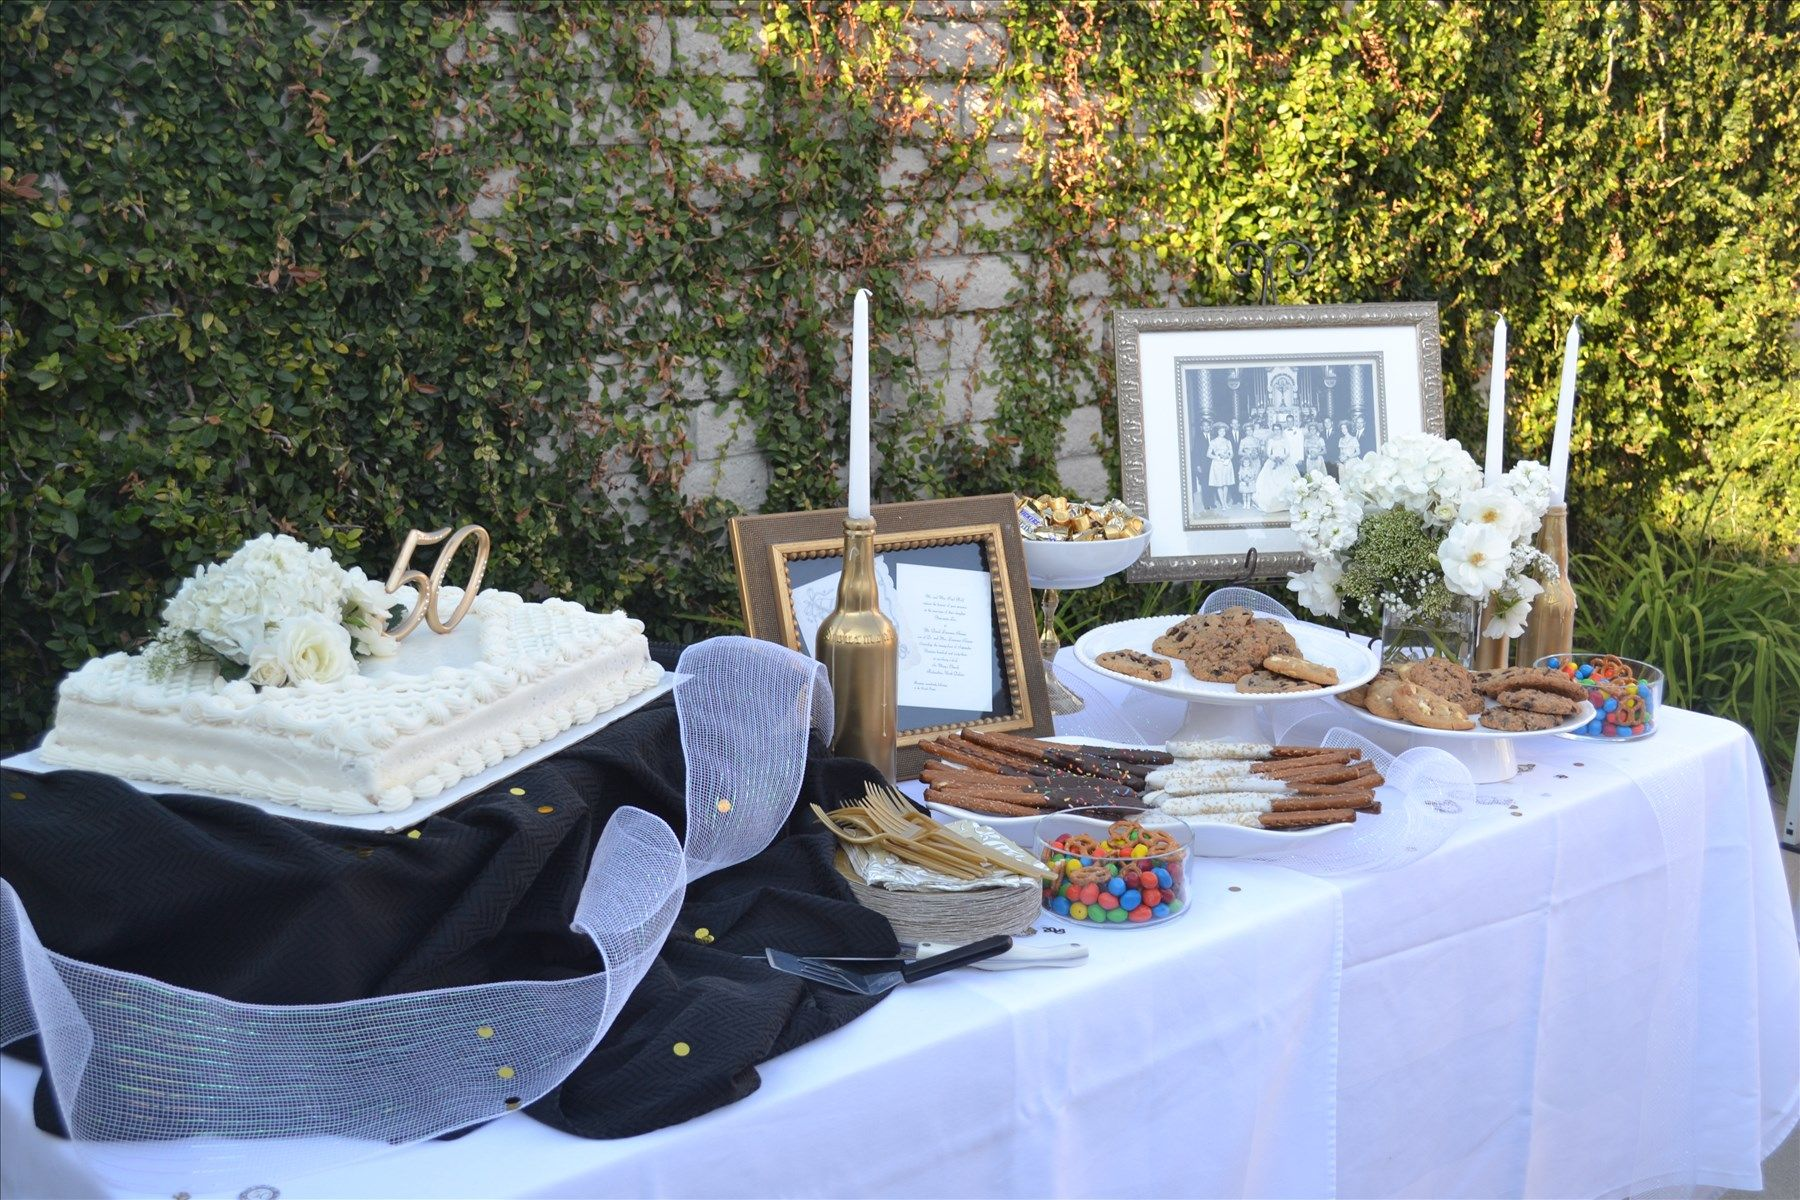 Dave and toni's 50th wedding anniversary dessert table 50th